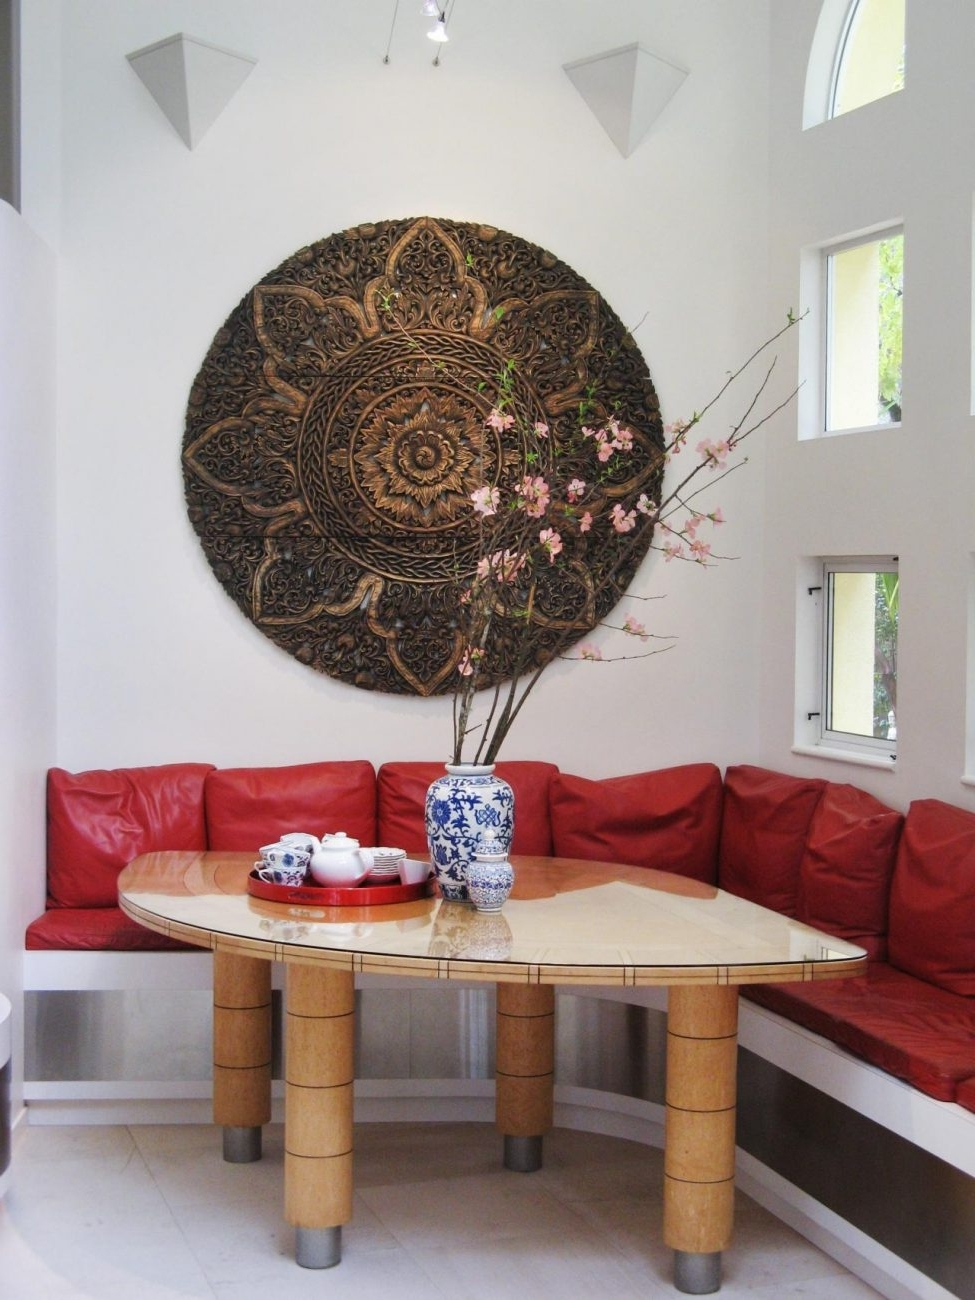 Widely Used Wall Art Design Ideas: Trend Asian Themed Wall Art 78 In Wall Art Intended For Asian Themed Wall Art (View 15 of 15)